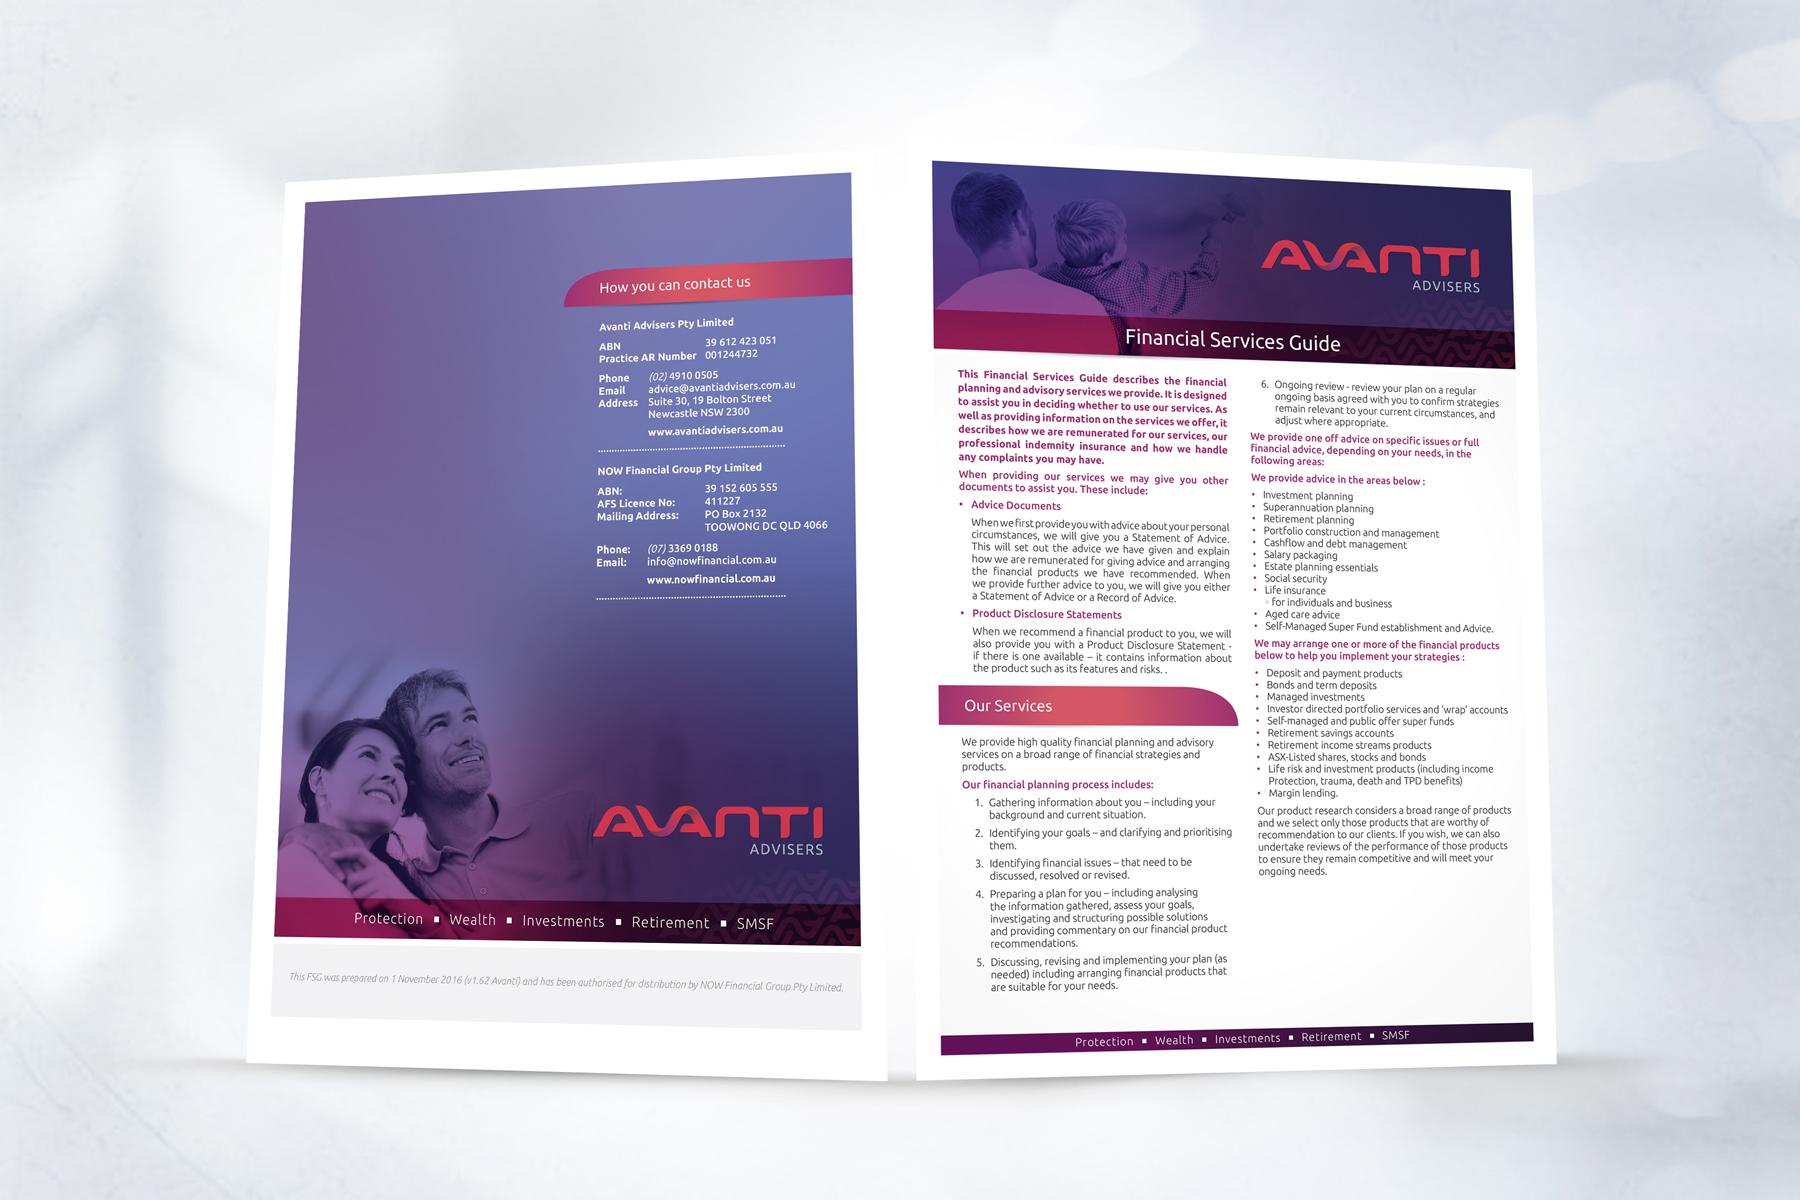 AVANTI Advisers Financial Services Guide 4 Page A4 Brochure